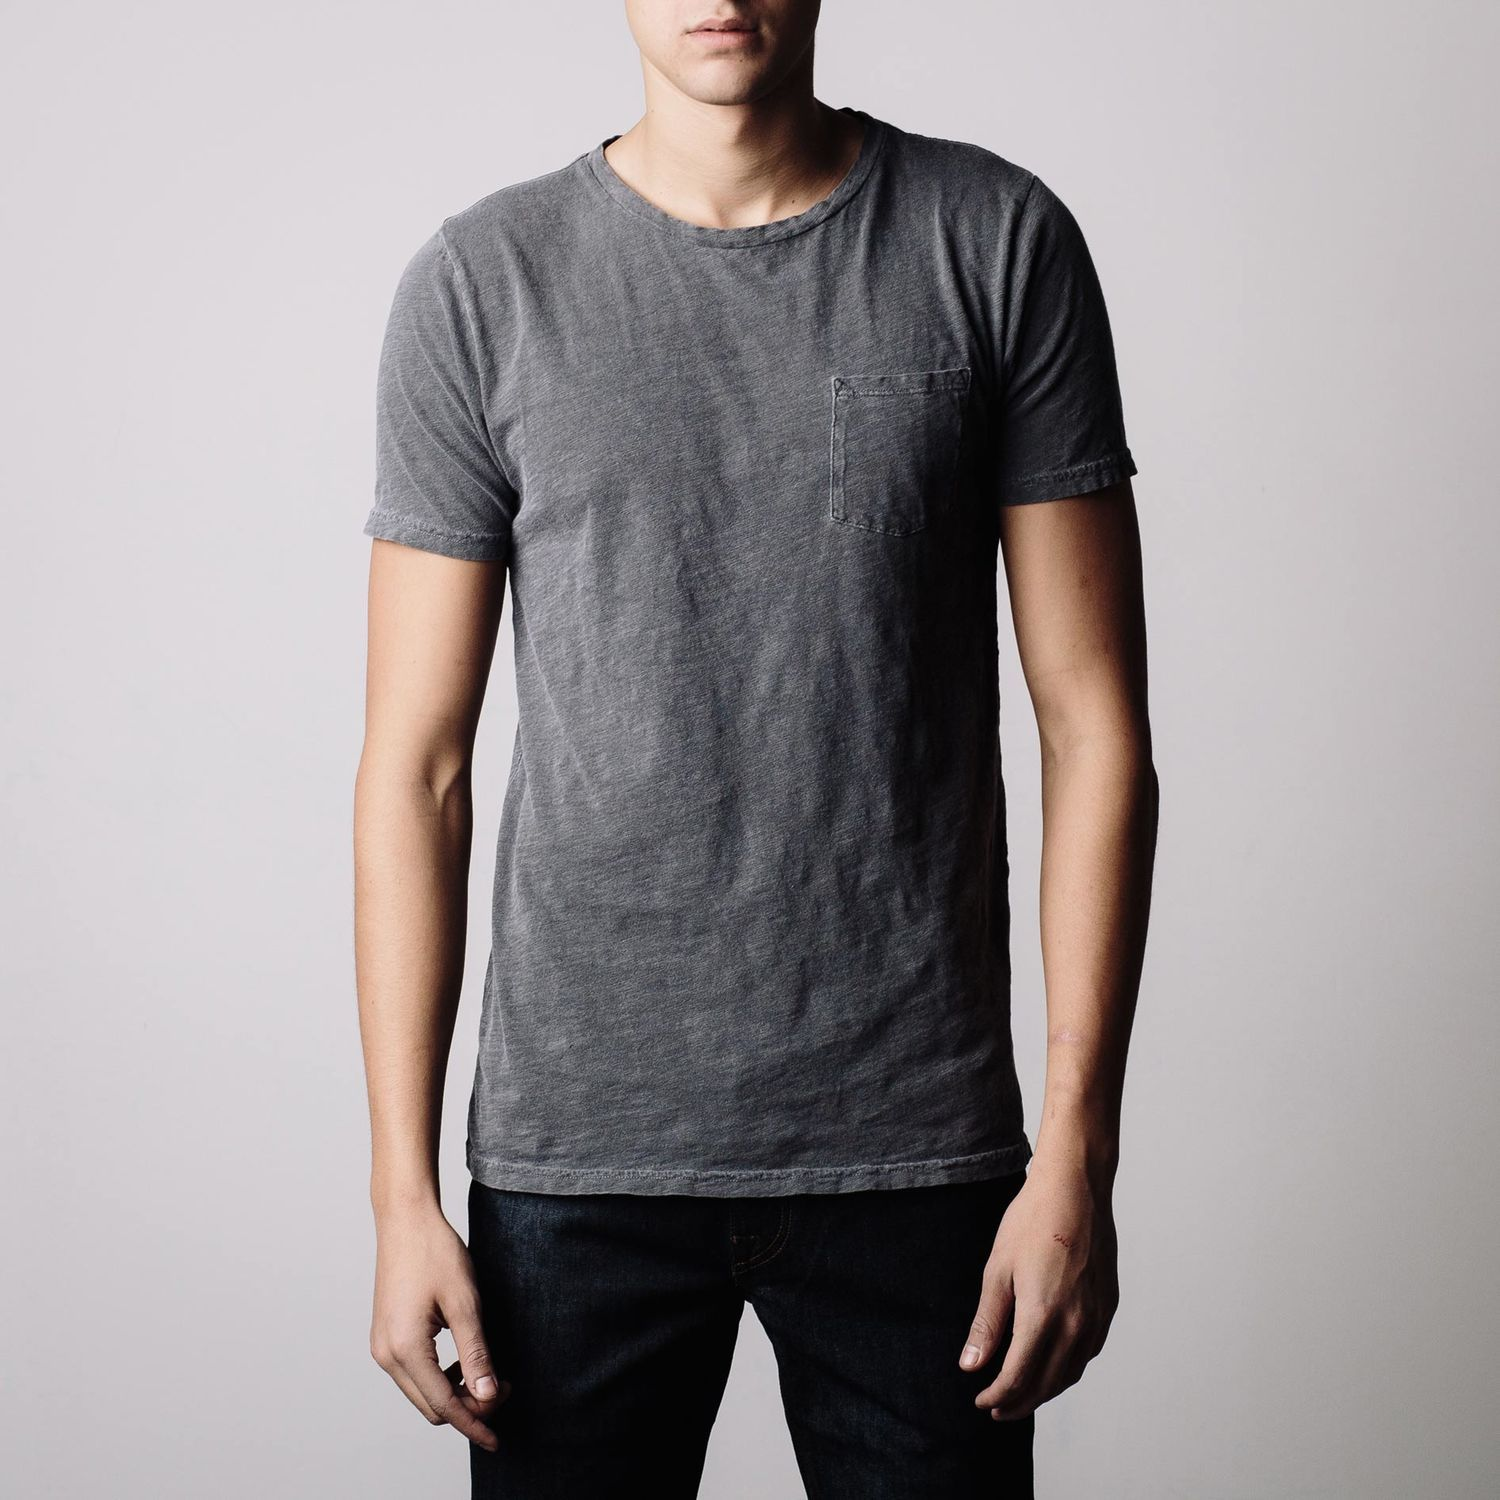 Mens Crew Neck In Charcoal | Clothes, gear, cool stuff ...